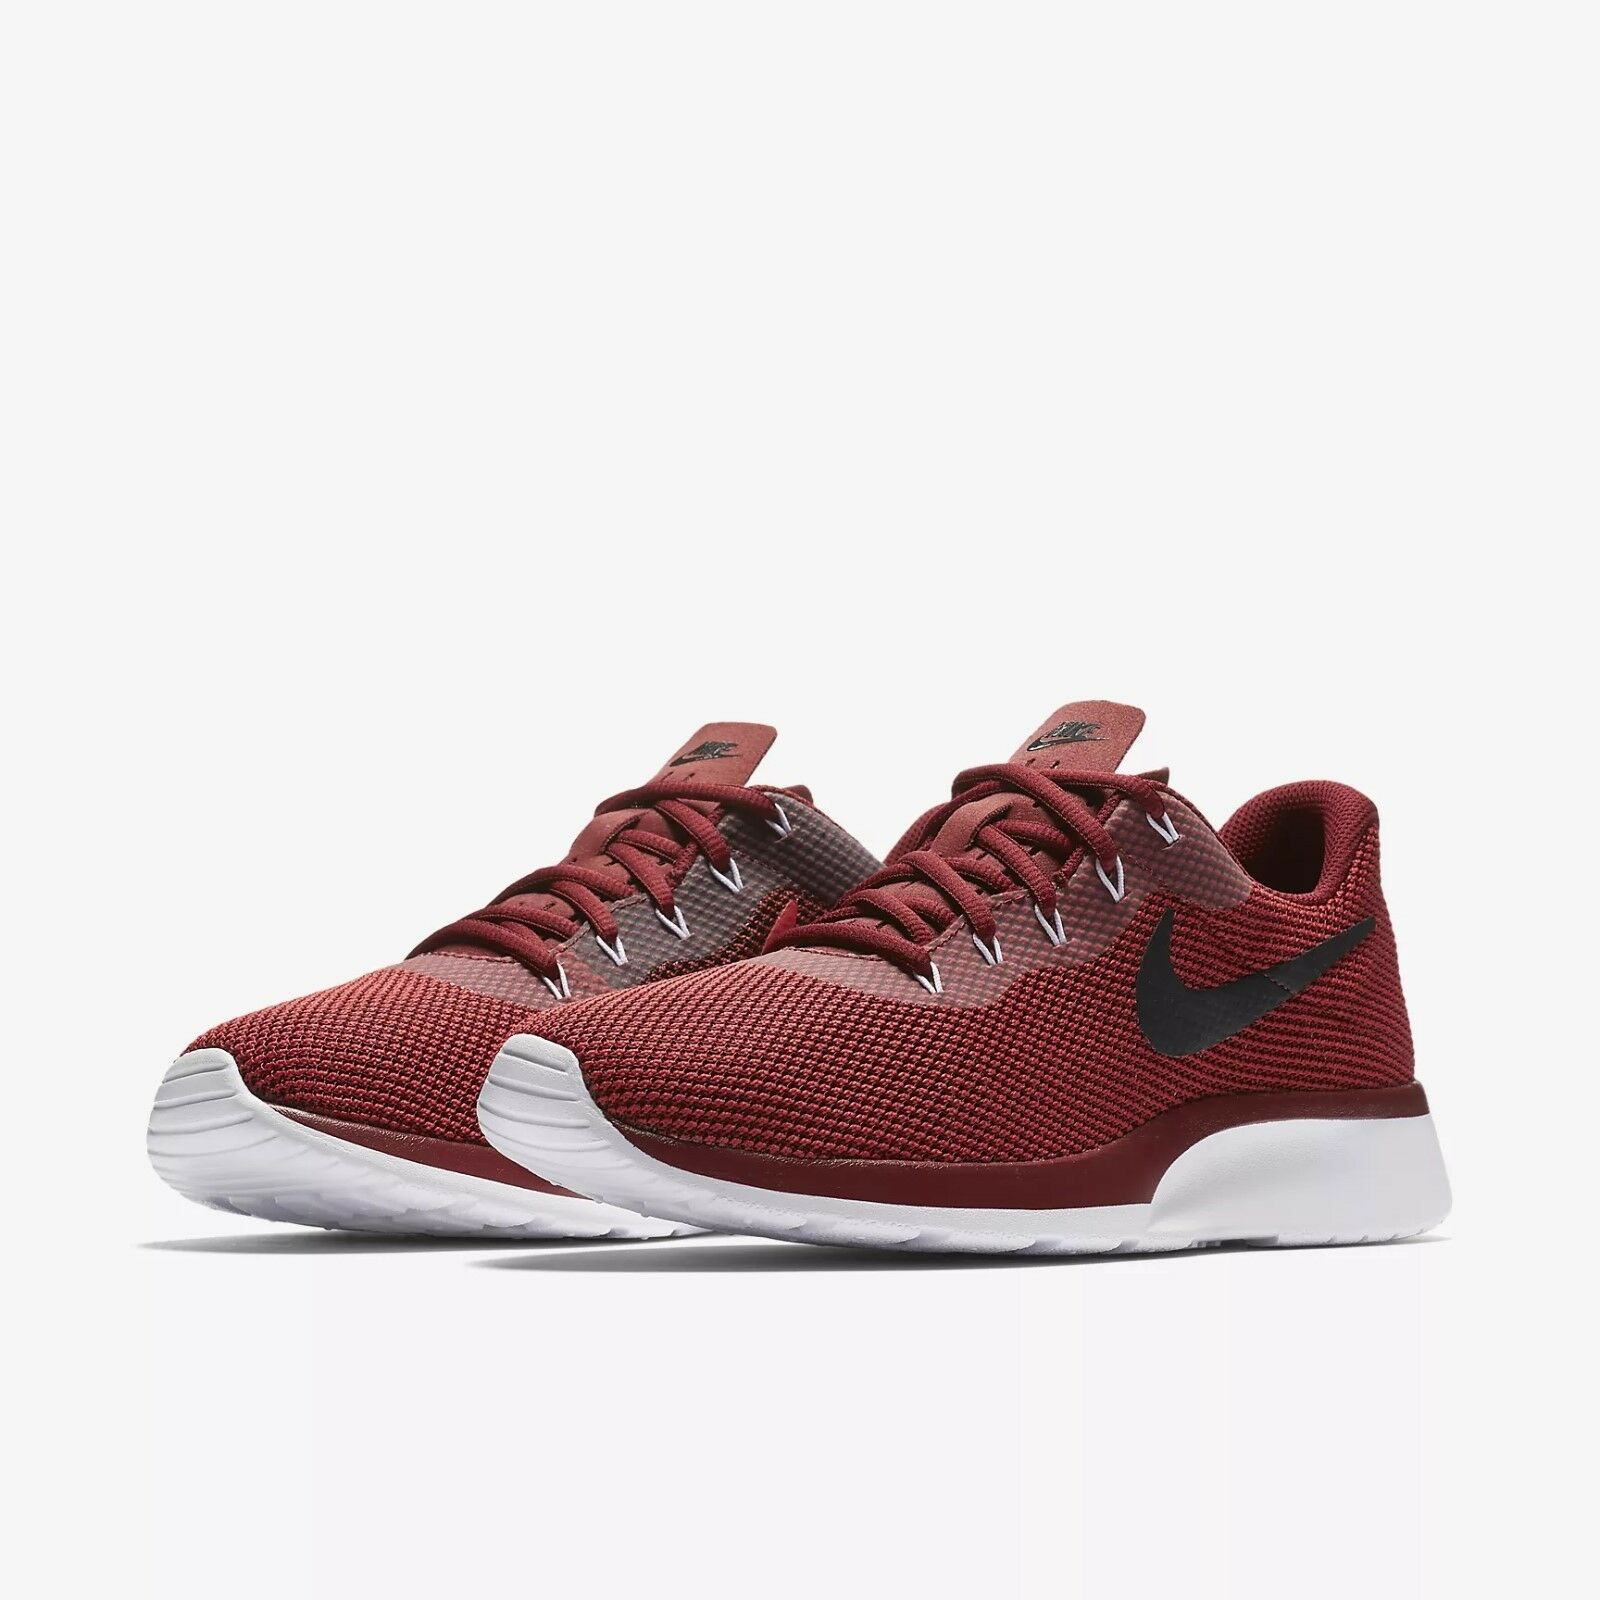 Men's Nike Tanjun Racer Shoes Dark Team Red/Blk-Wht NIB Sizes 8-12 921669-600